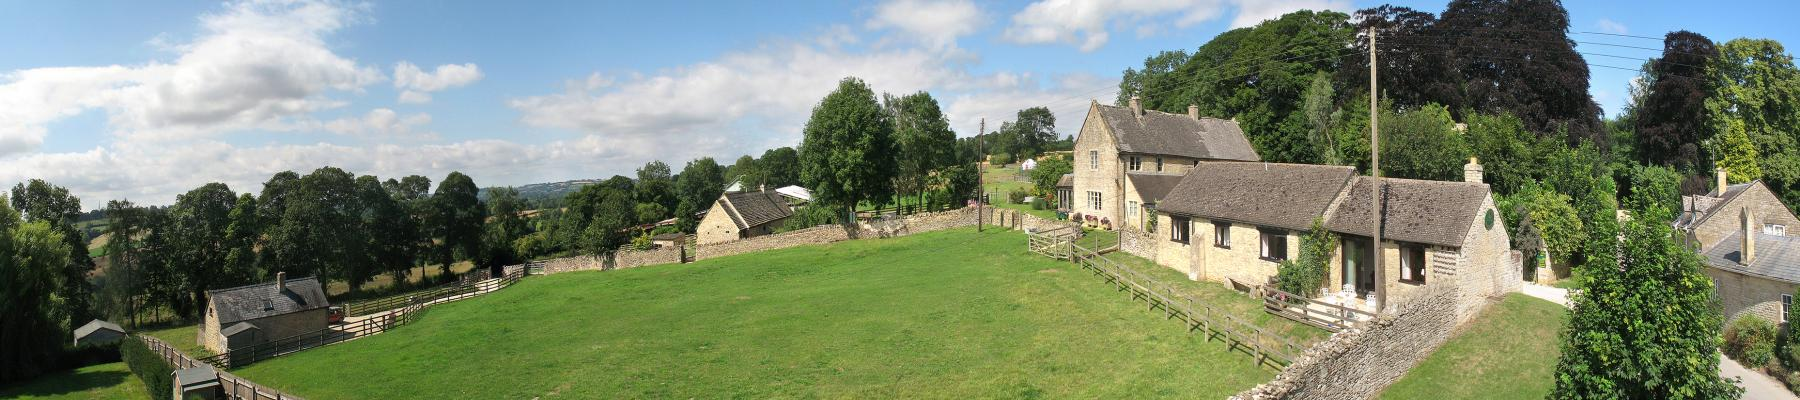 Luxury Self-Catering Cottages in the Cotswolds